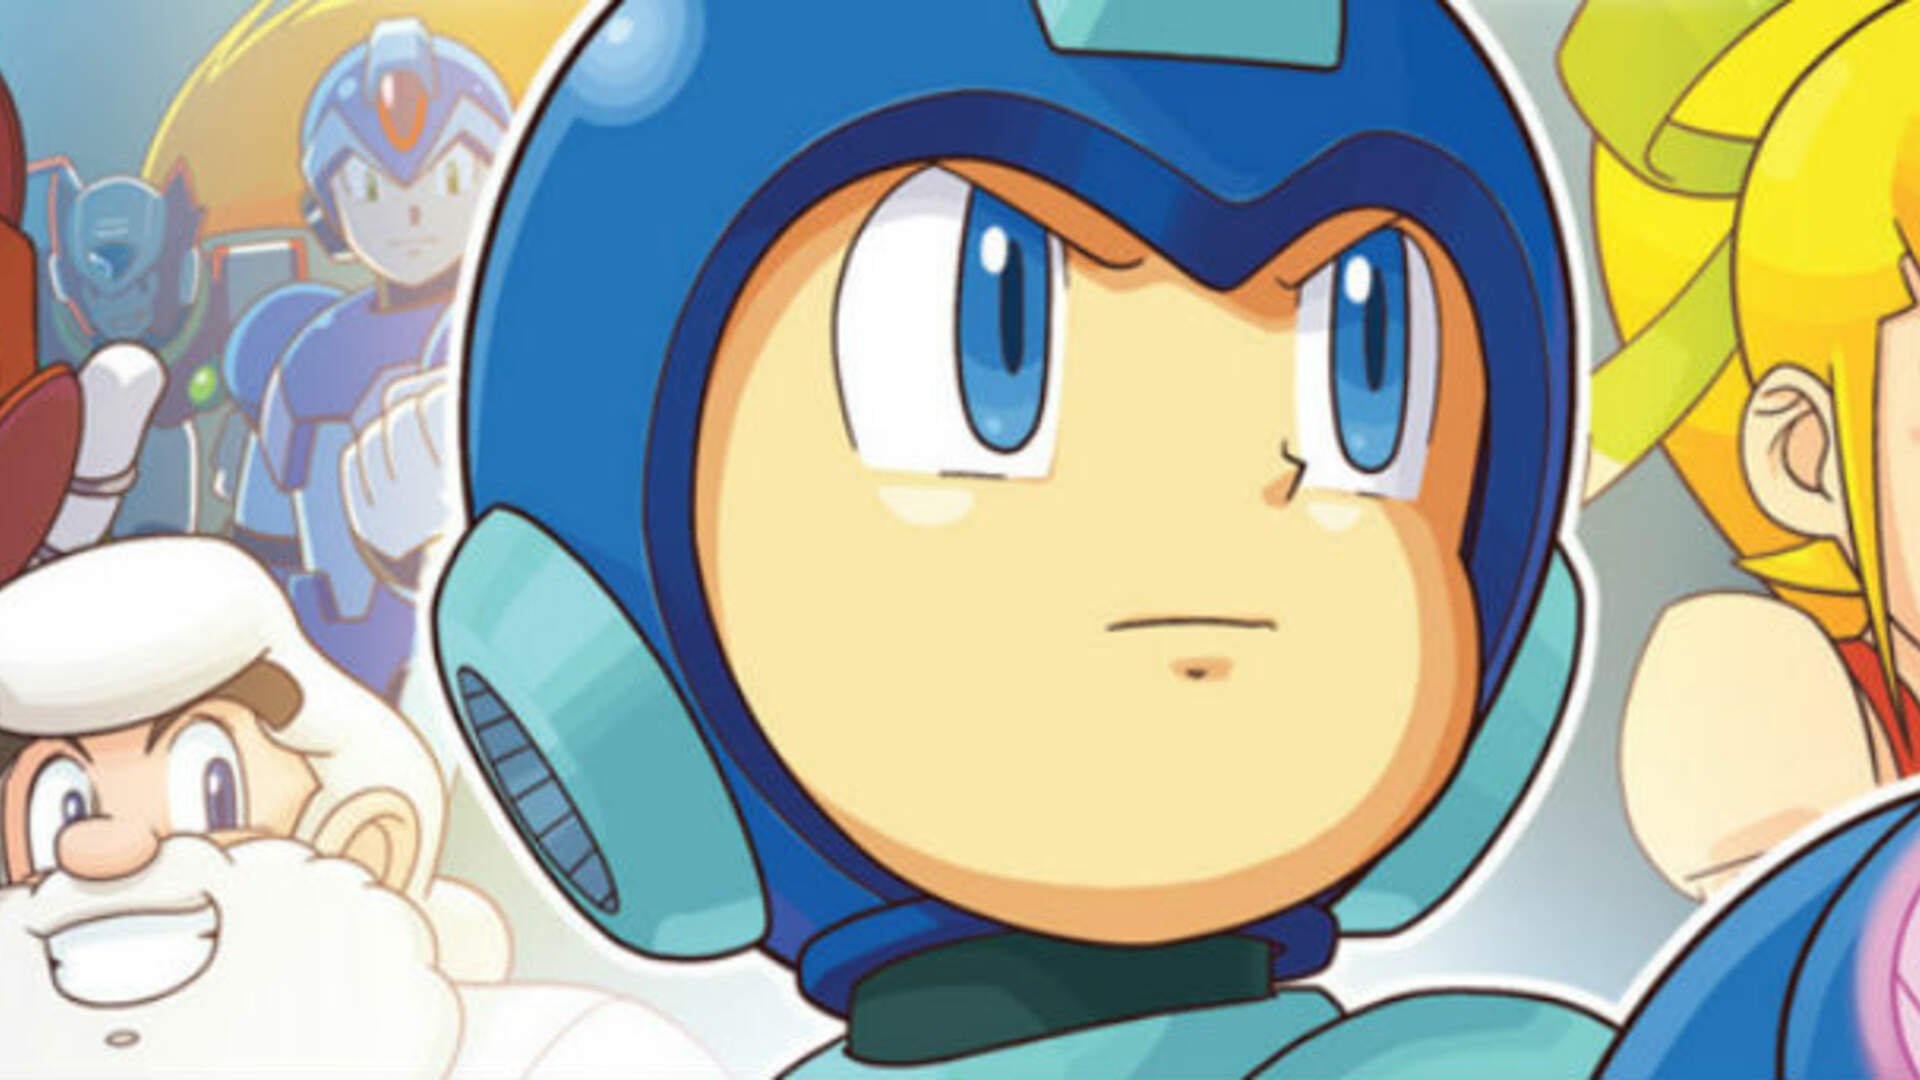 Mega Man 11 Coming to Switch, PC, PS4, and Xbox One